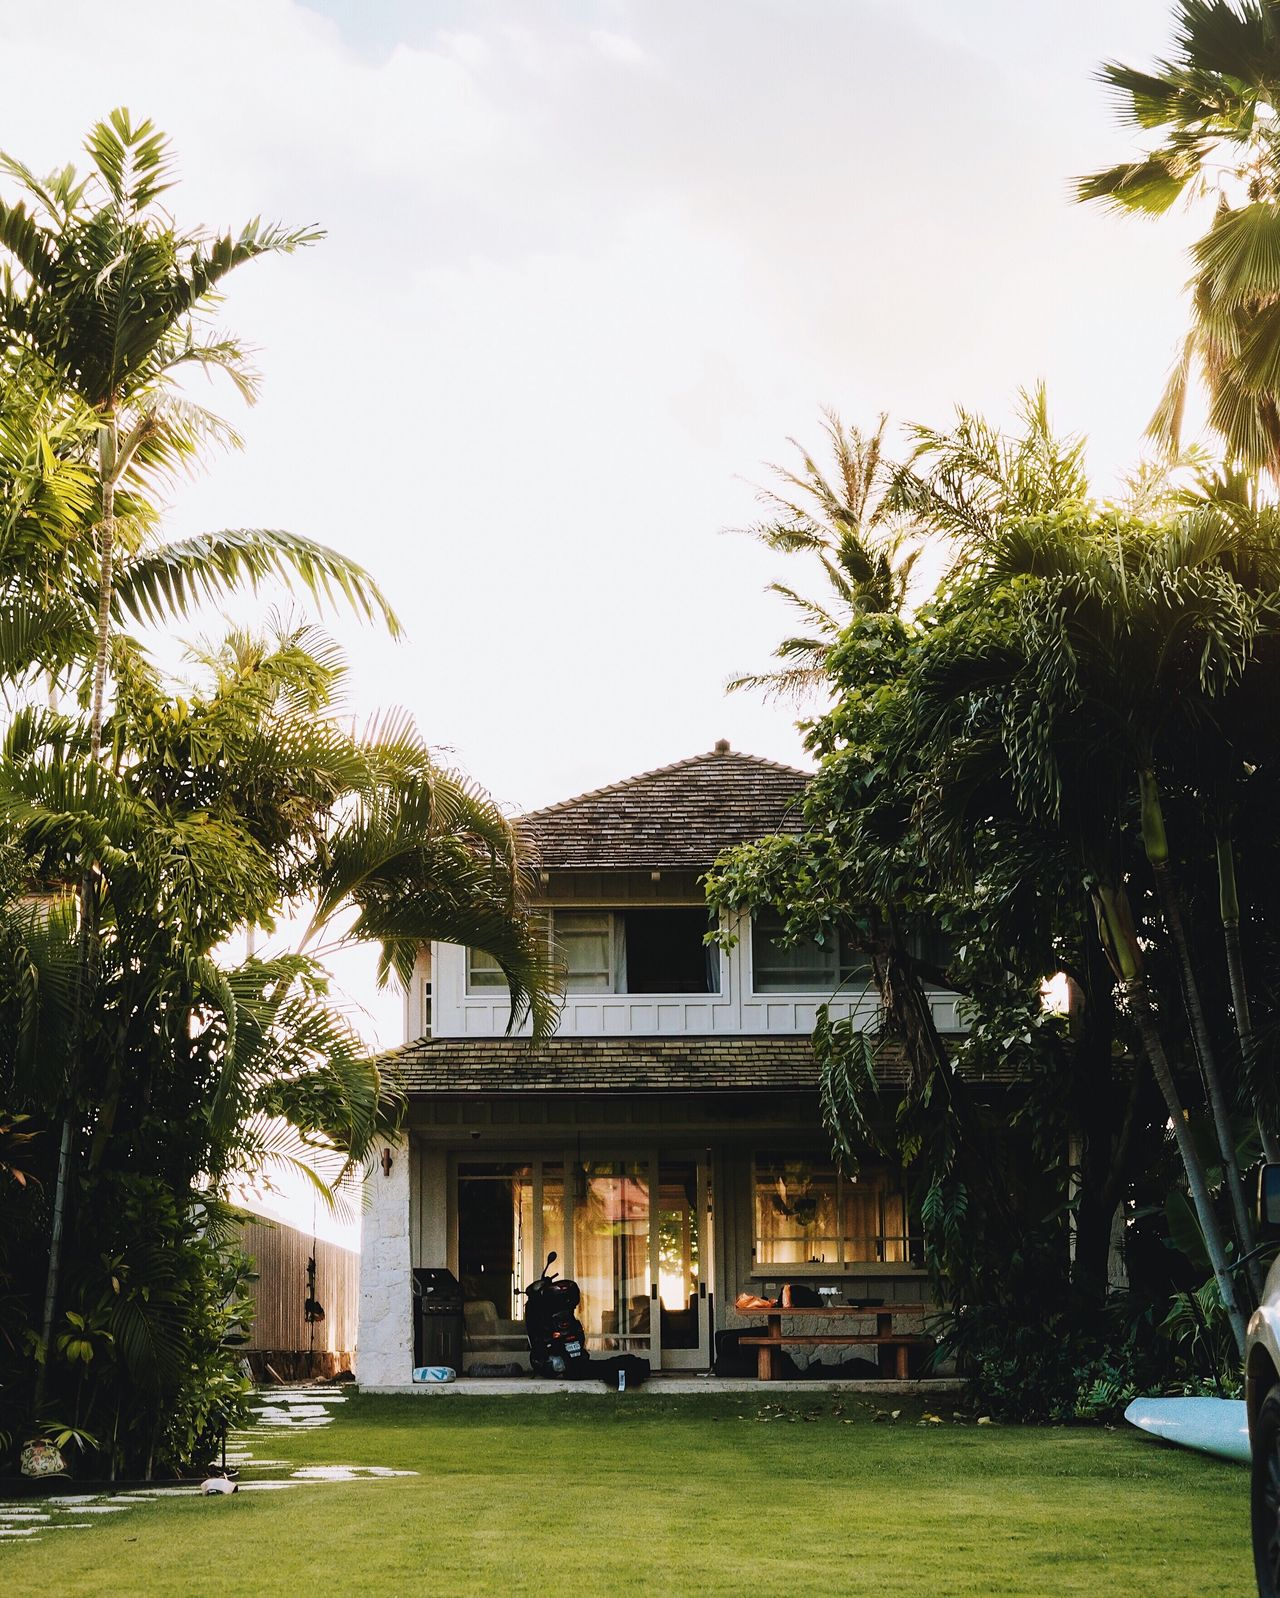 Hawaiian goals. Also, if you want to have similar edits like this, I have custom made presets. Architecture Tree Building Exterior Built Structure Grass House Day Sky Palm Tree Outdoors Growth No People